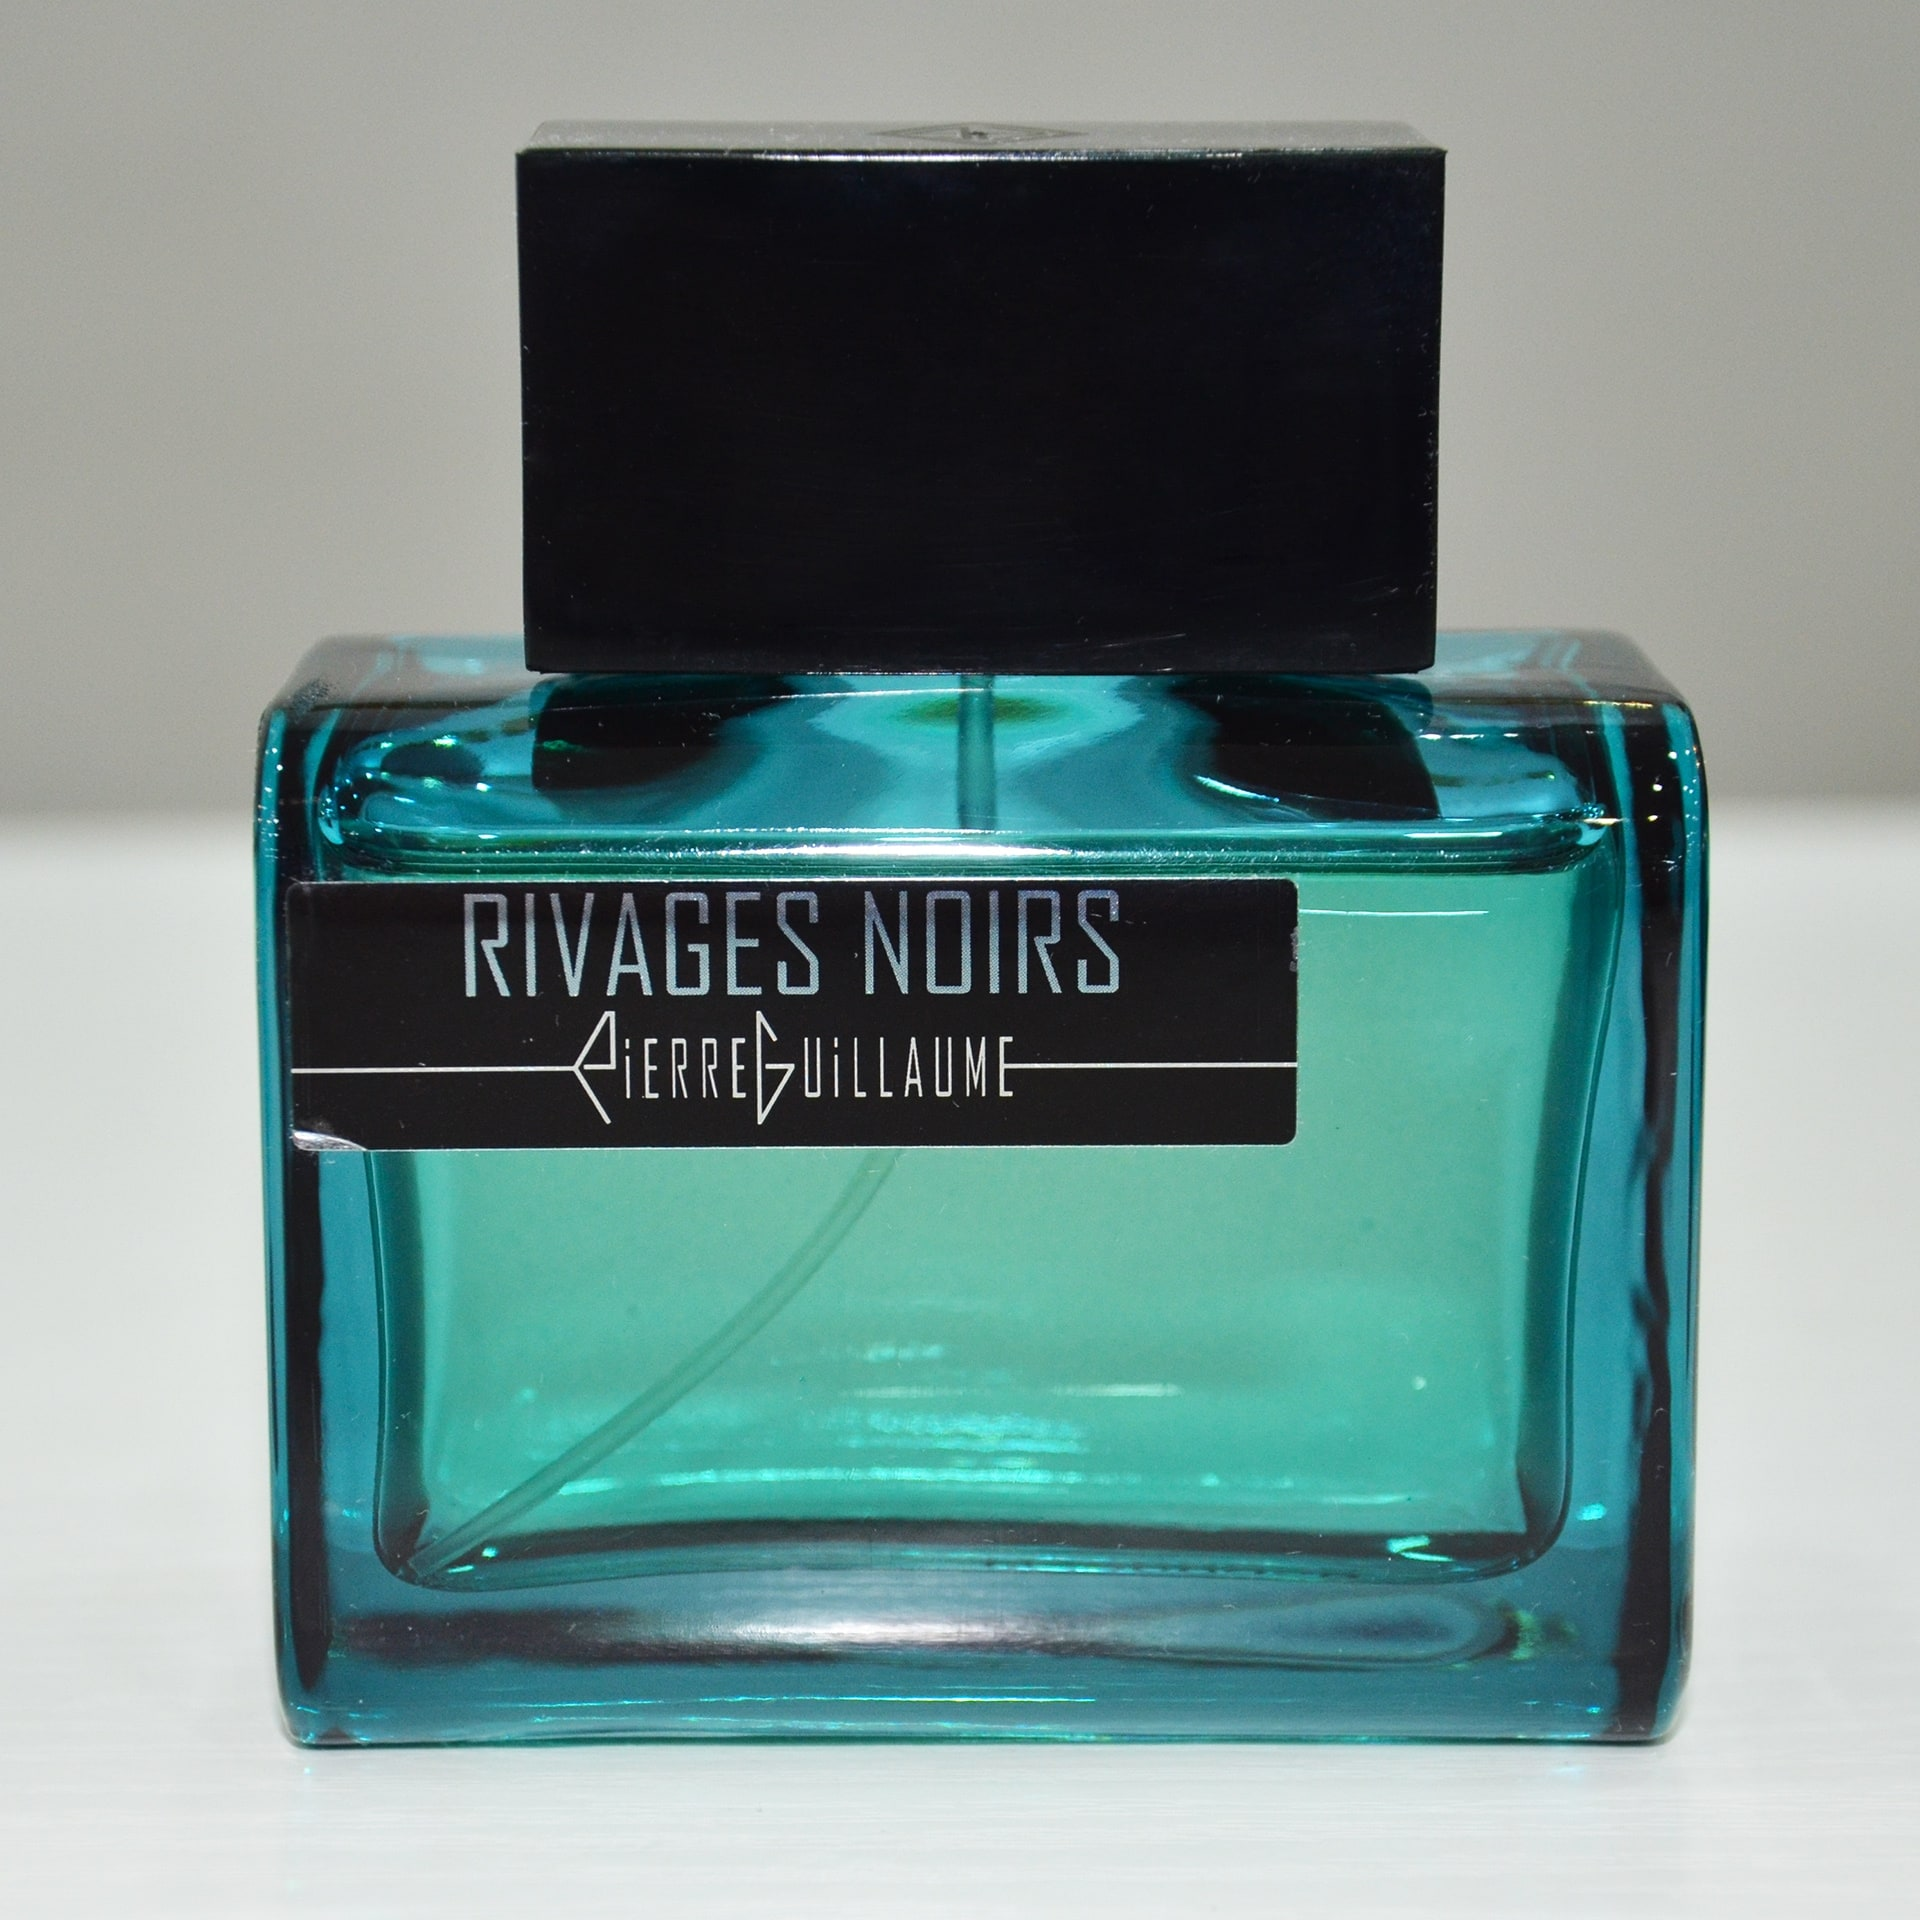 Ароматы Pierre Guillaume Collection Croisiere Rivages Noirs